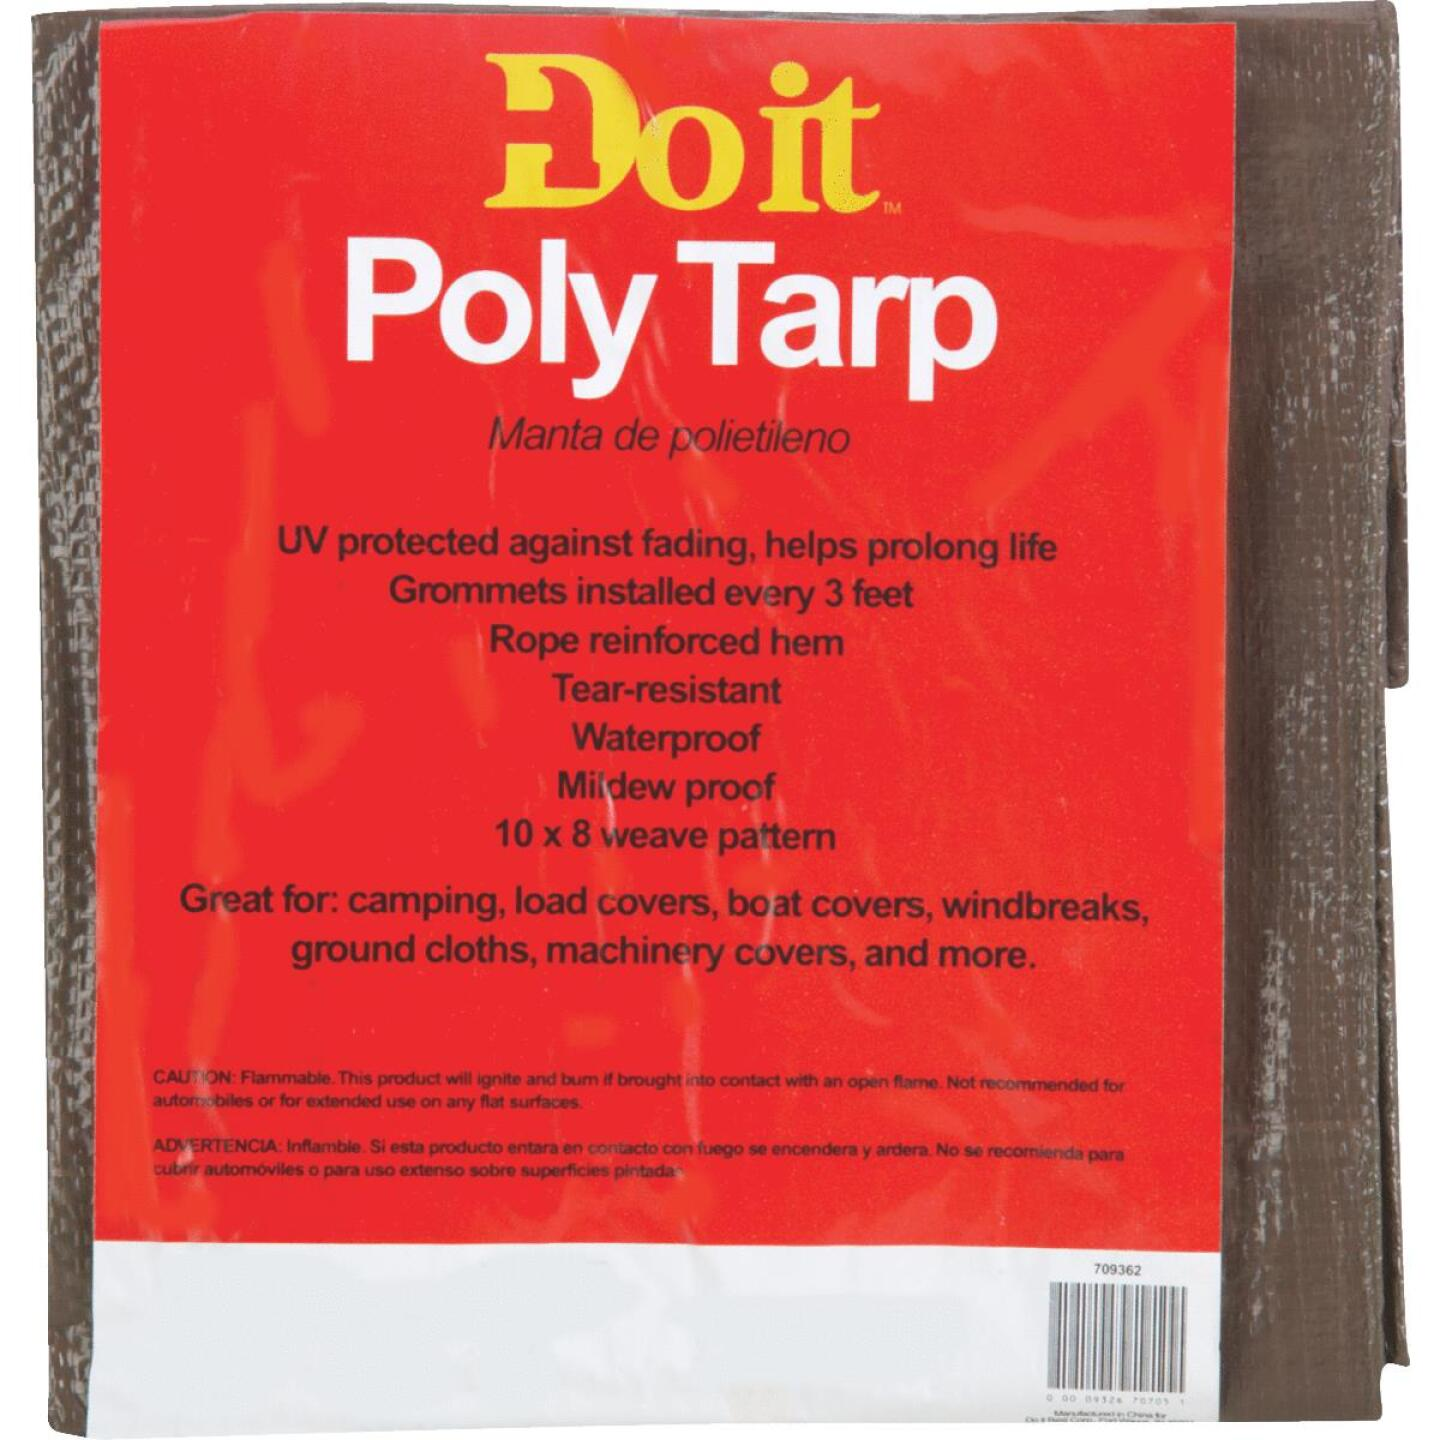 Do it Green/Brown Woven 5 Ft. x 7 Ft. Medium Duty Poly Tarp Image 2